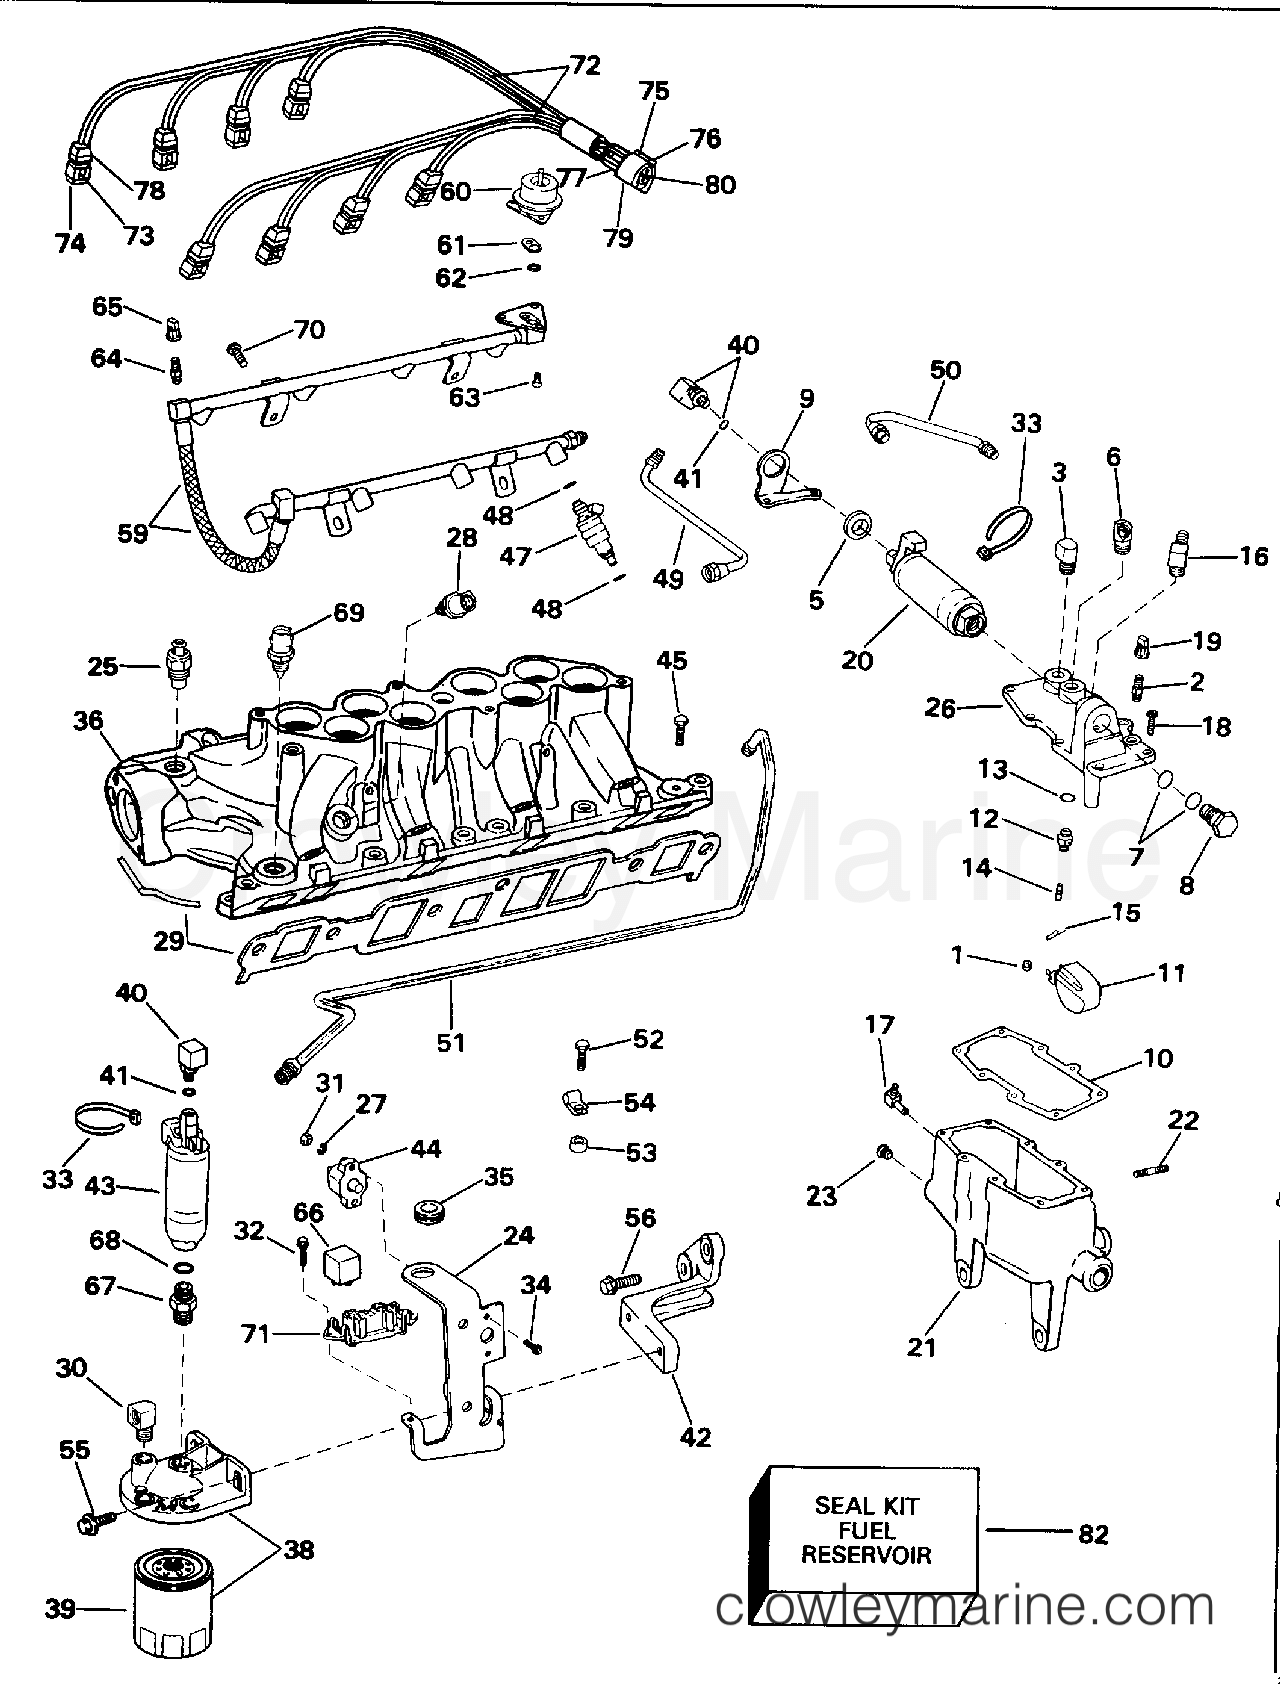 Fuel System Amp Lower Intake Manifold